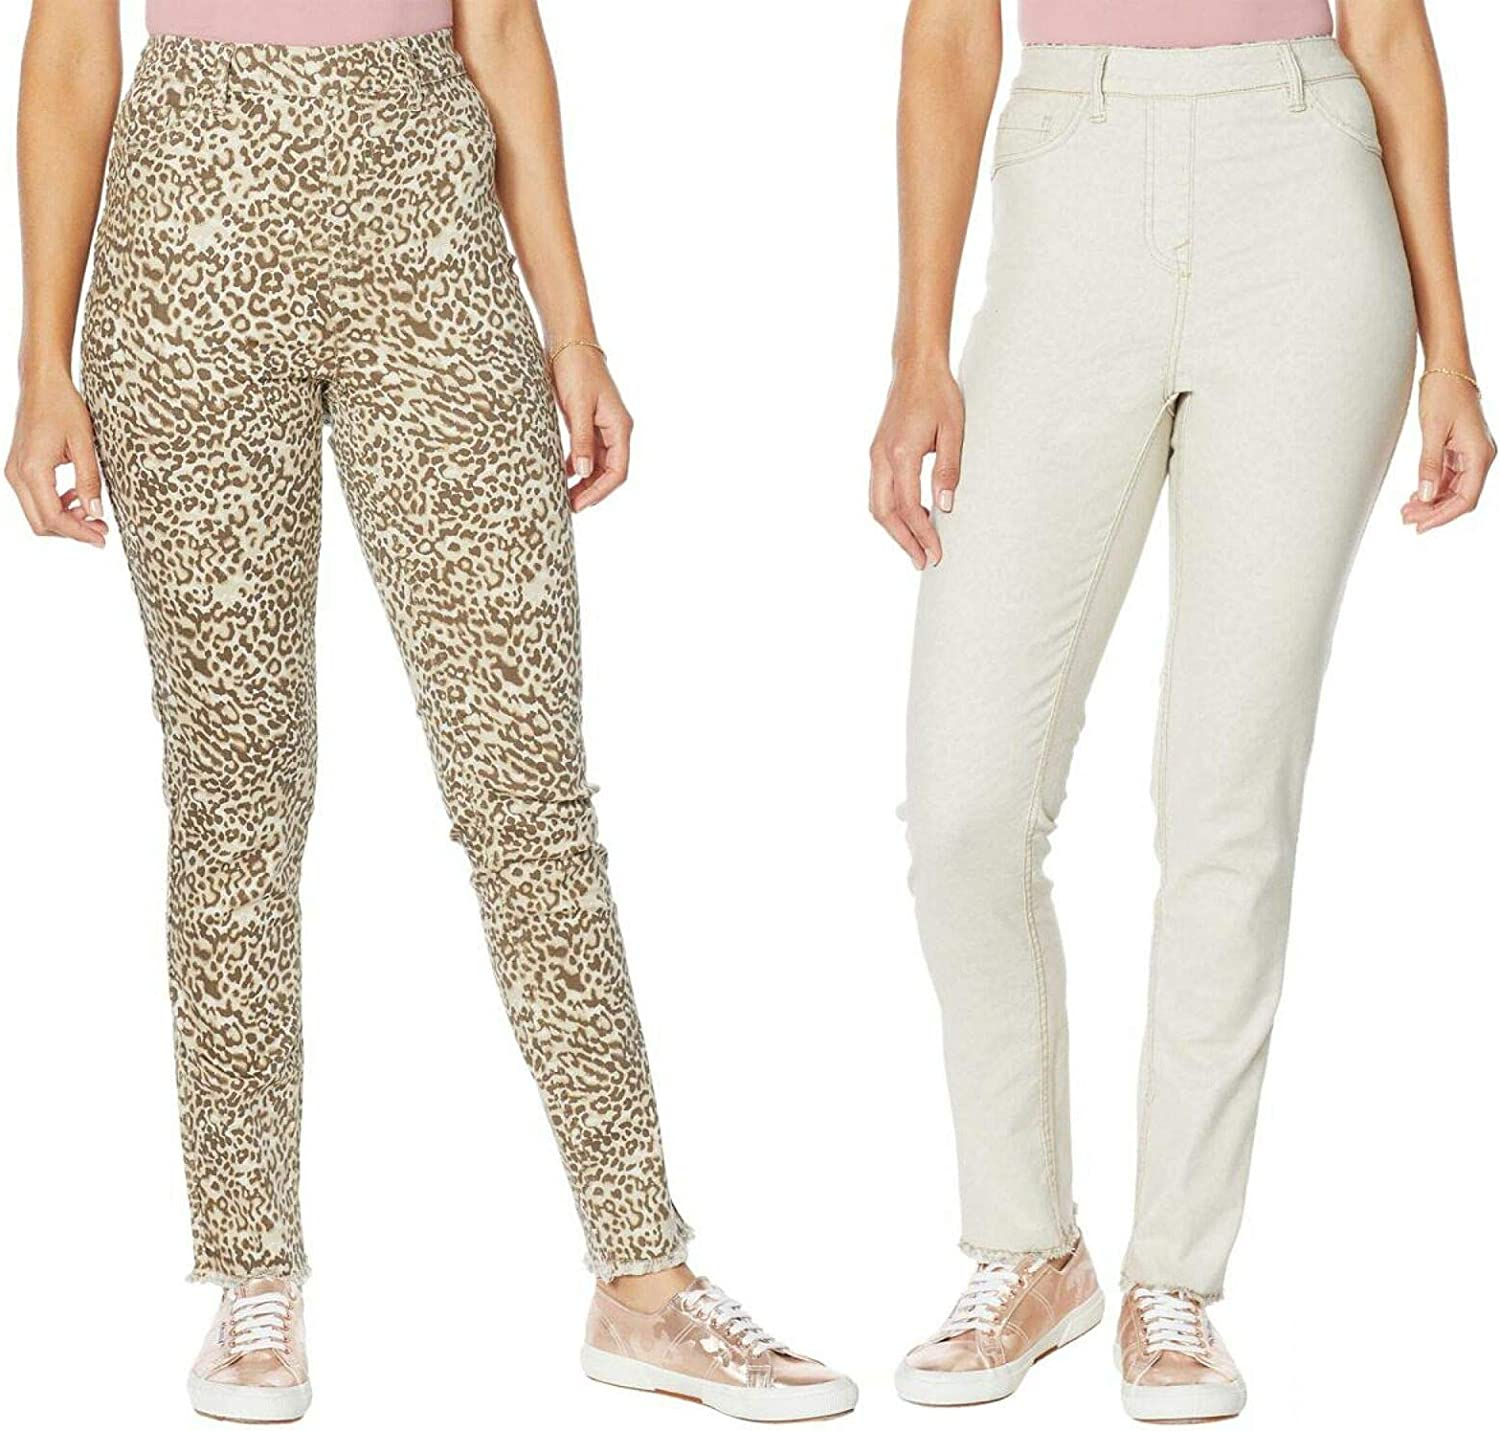 DG2 by Diane Gilman Tall Reversible Twill Pull On Skinny Jeans. 716772-Tall